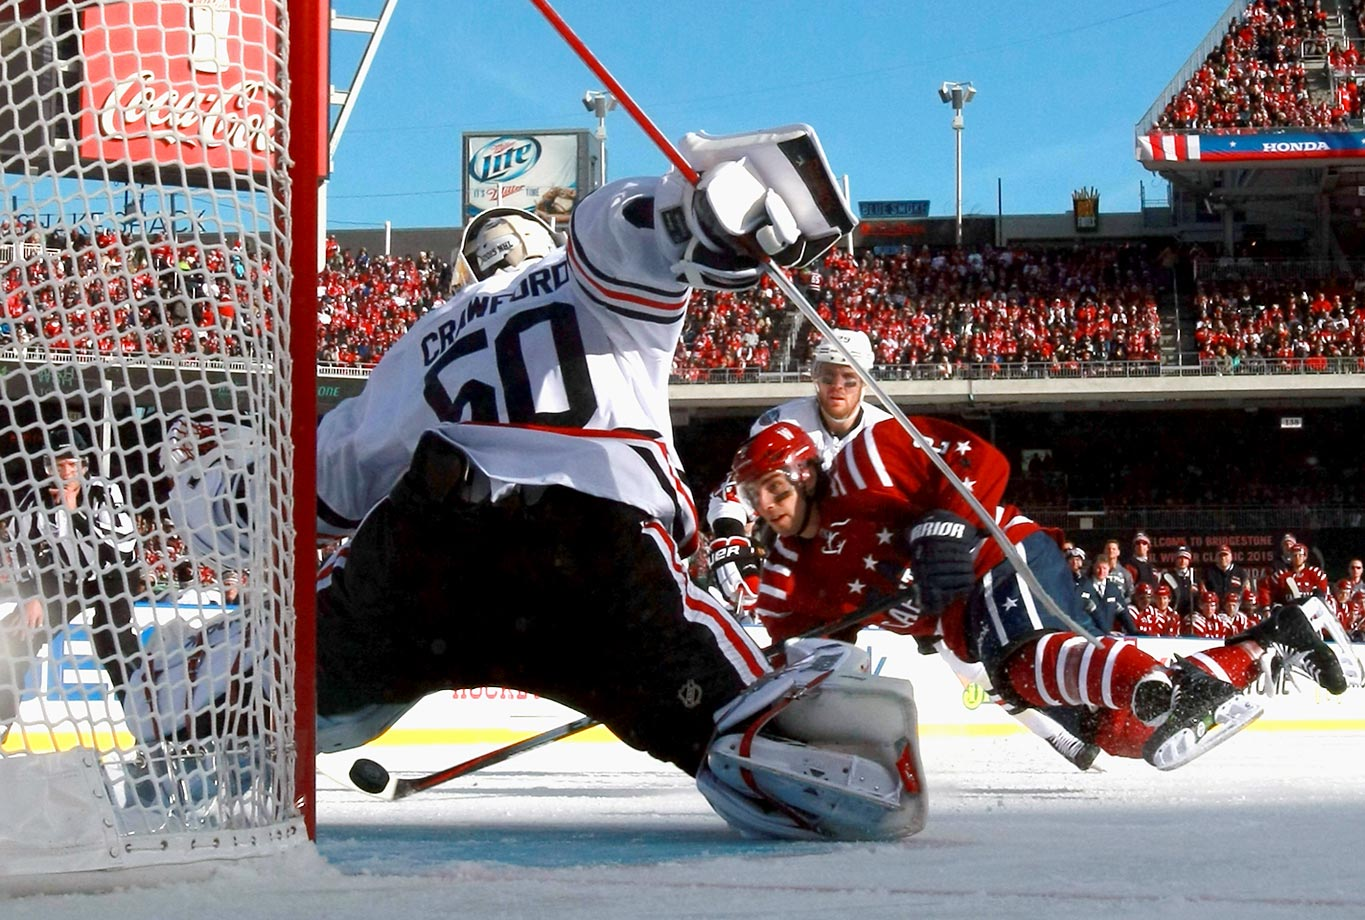 Matt Niskanen #2 of the Washington Capitals follows through on a shot on goal against goaltender Corey Crawford #50 of the Chicago Blackhawks during second period of the 2015 Bridgestone NHL Winter Classic on January 1, 2015 in Washington, DC.